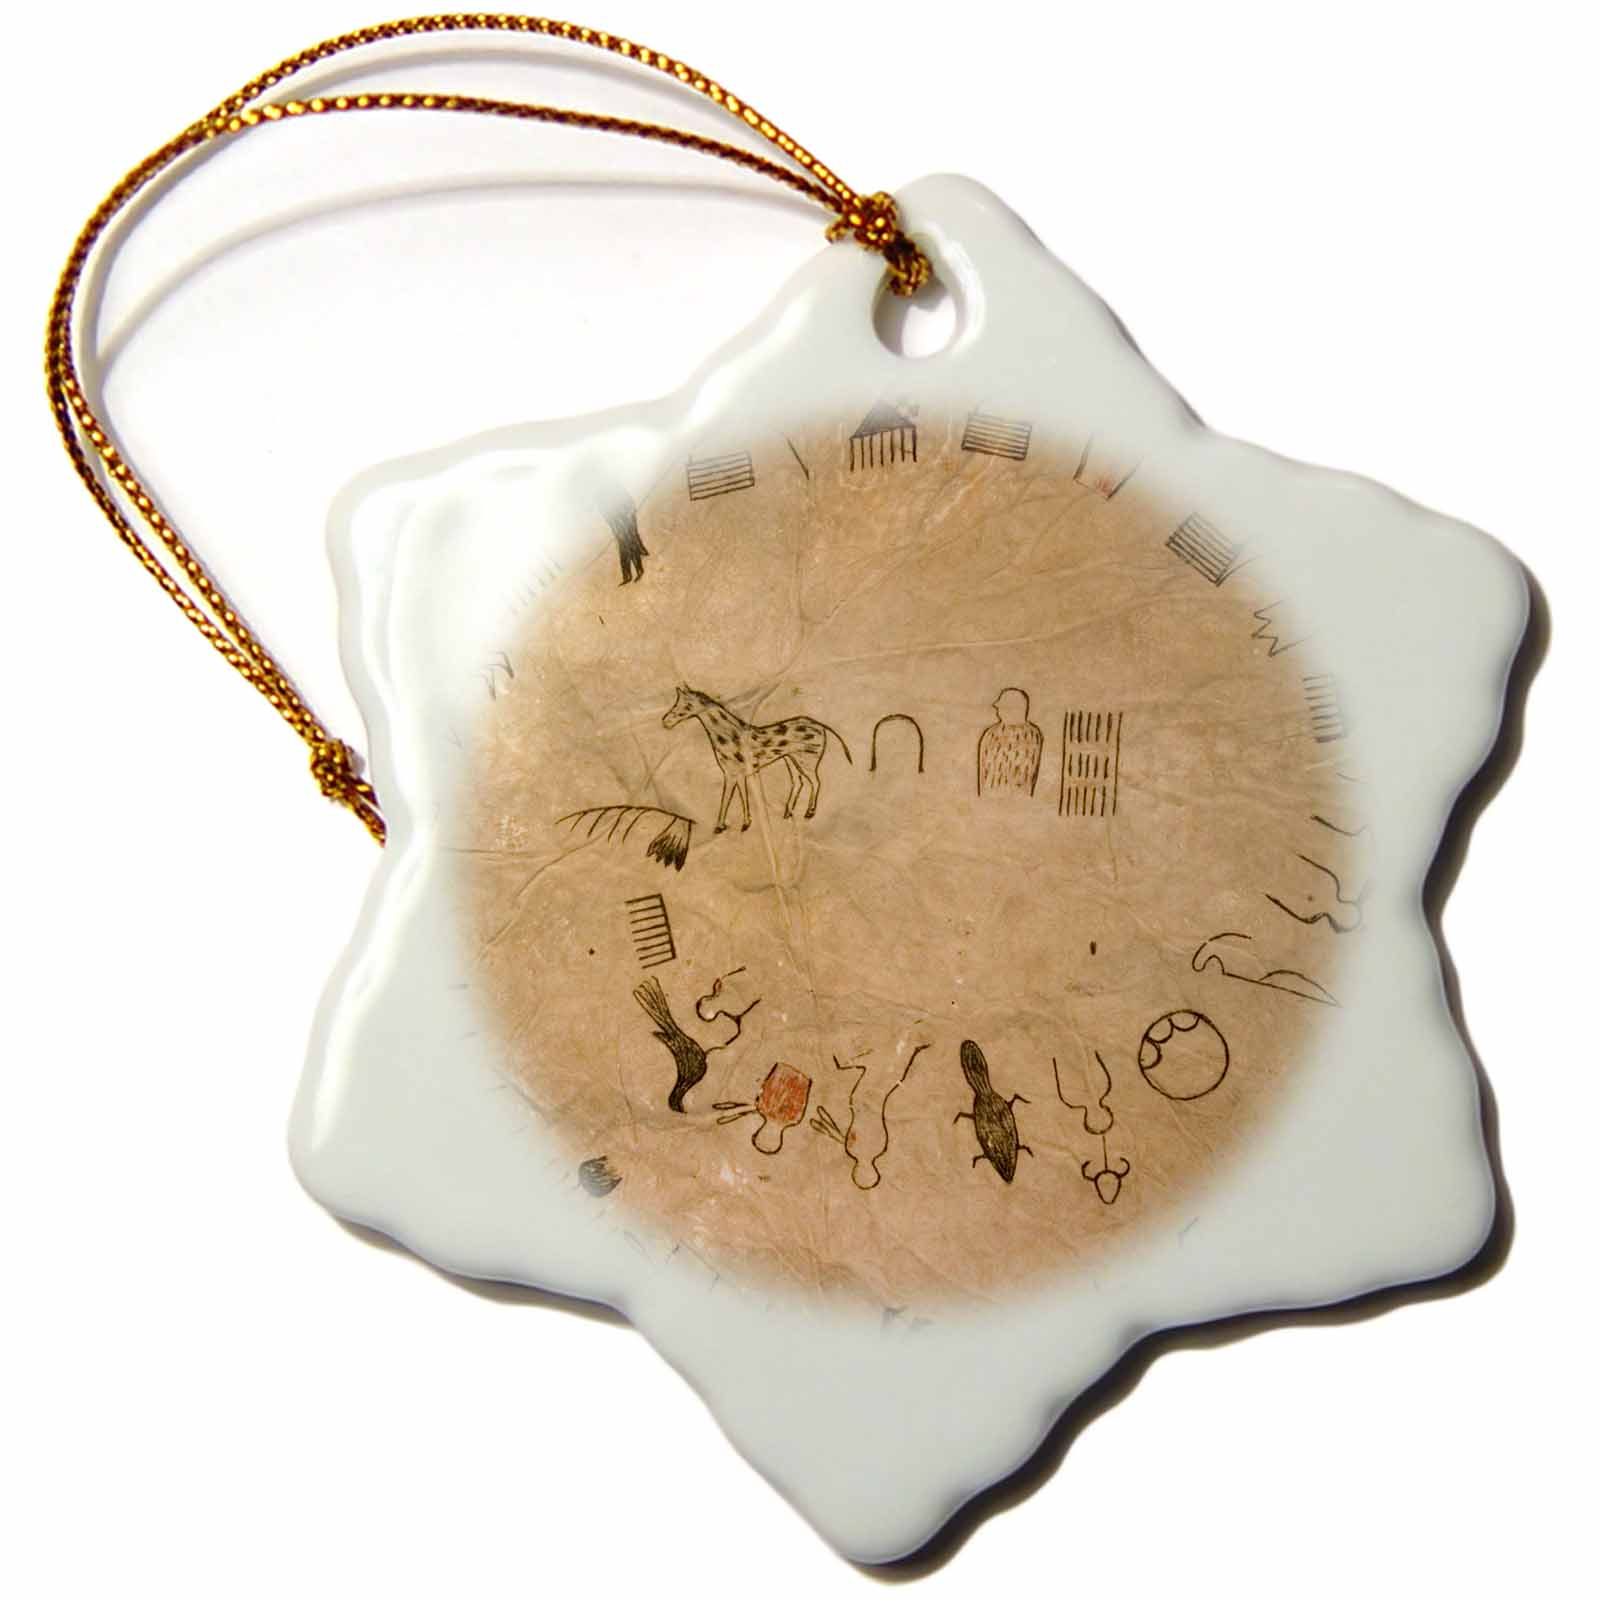 3dRose Lakota Sioux, buffalo robes, Native American - US42 AWY0000 - Angel Wynn, Snowflake Ornament, Porcelain, 3-inch